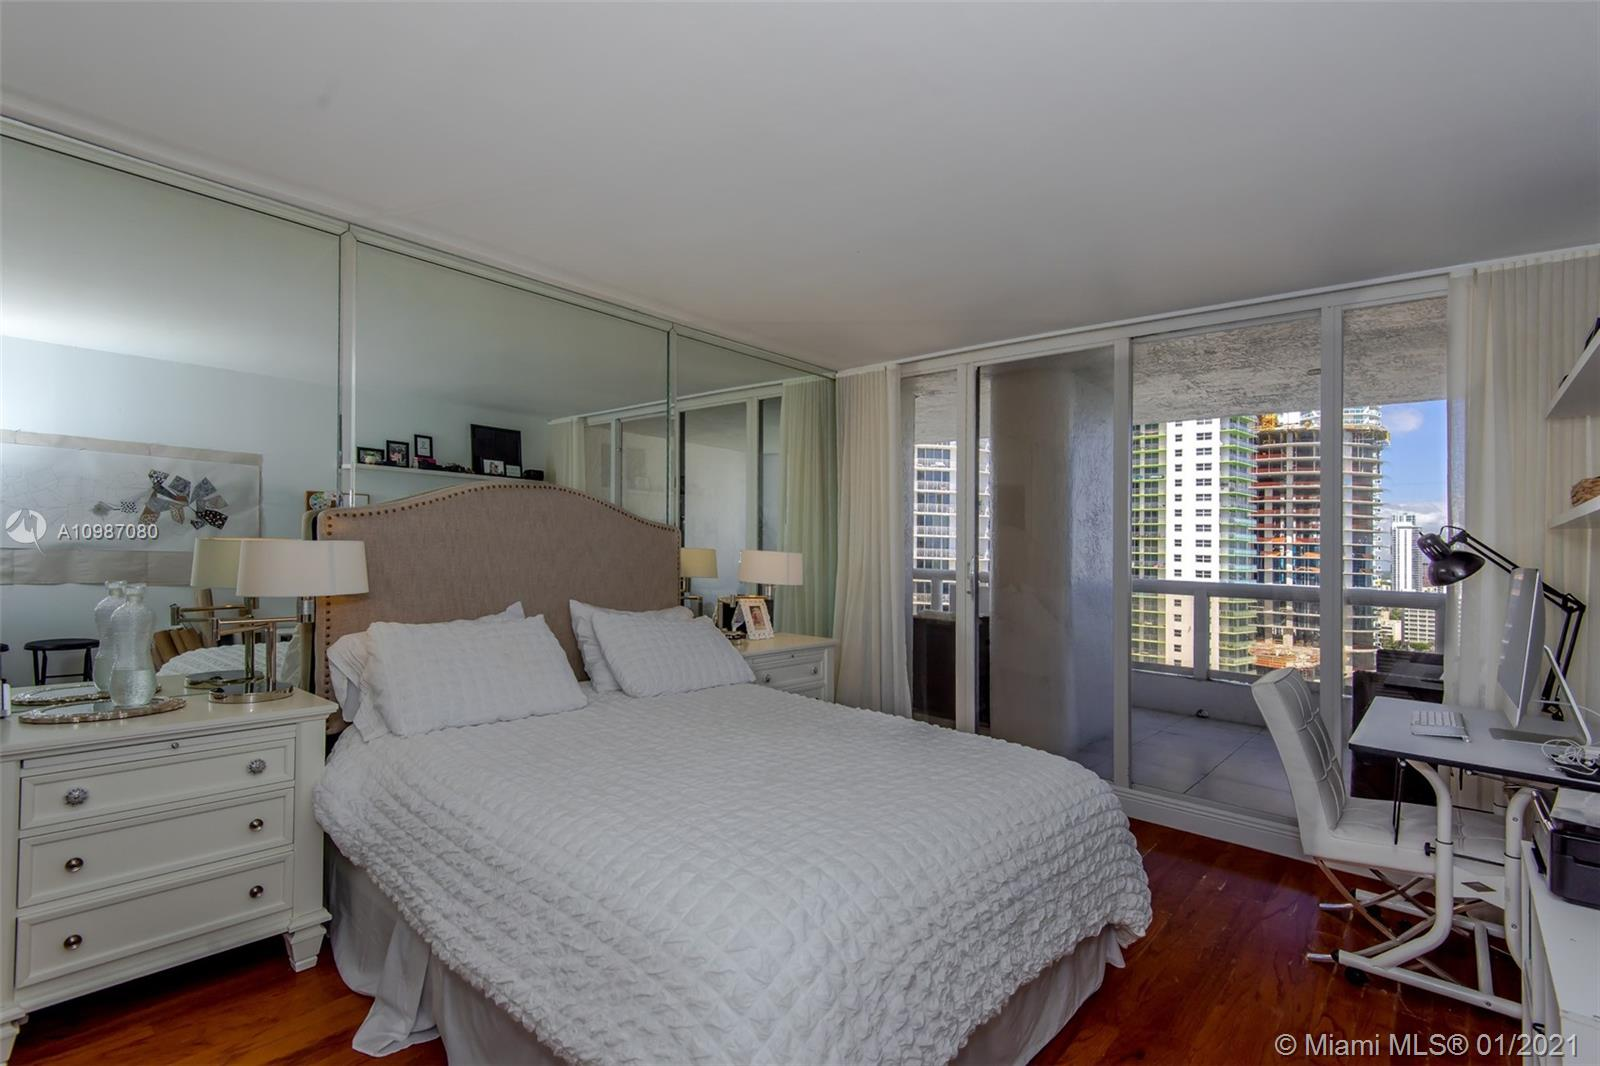 1717 N Bayshore Dr # 2447, Miami, Florida 33132, 3 Bedrooms Bedrooms, ,3 BathroomsBathrooms,Residential,For Sale,1717 N Bayshore Dr # 2447,A10987080